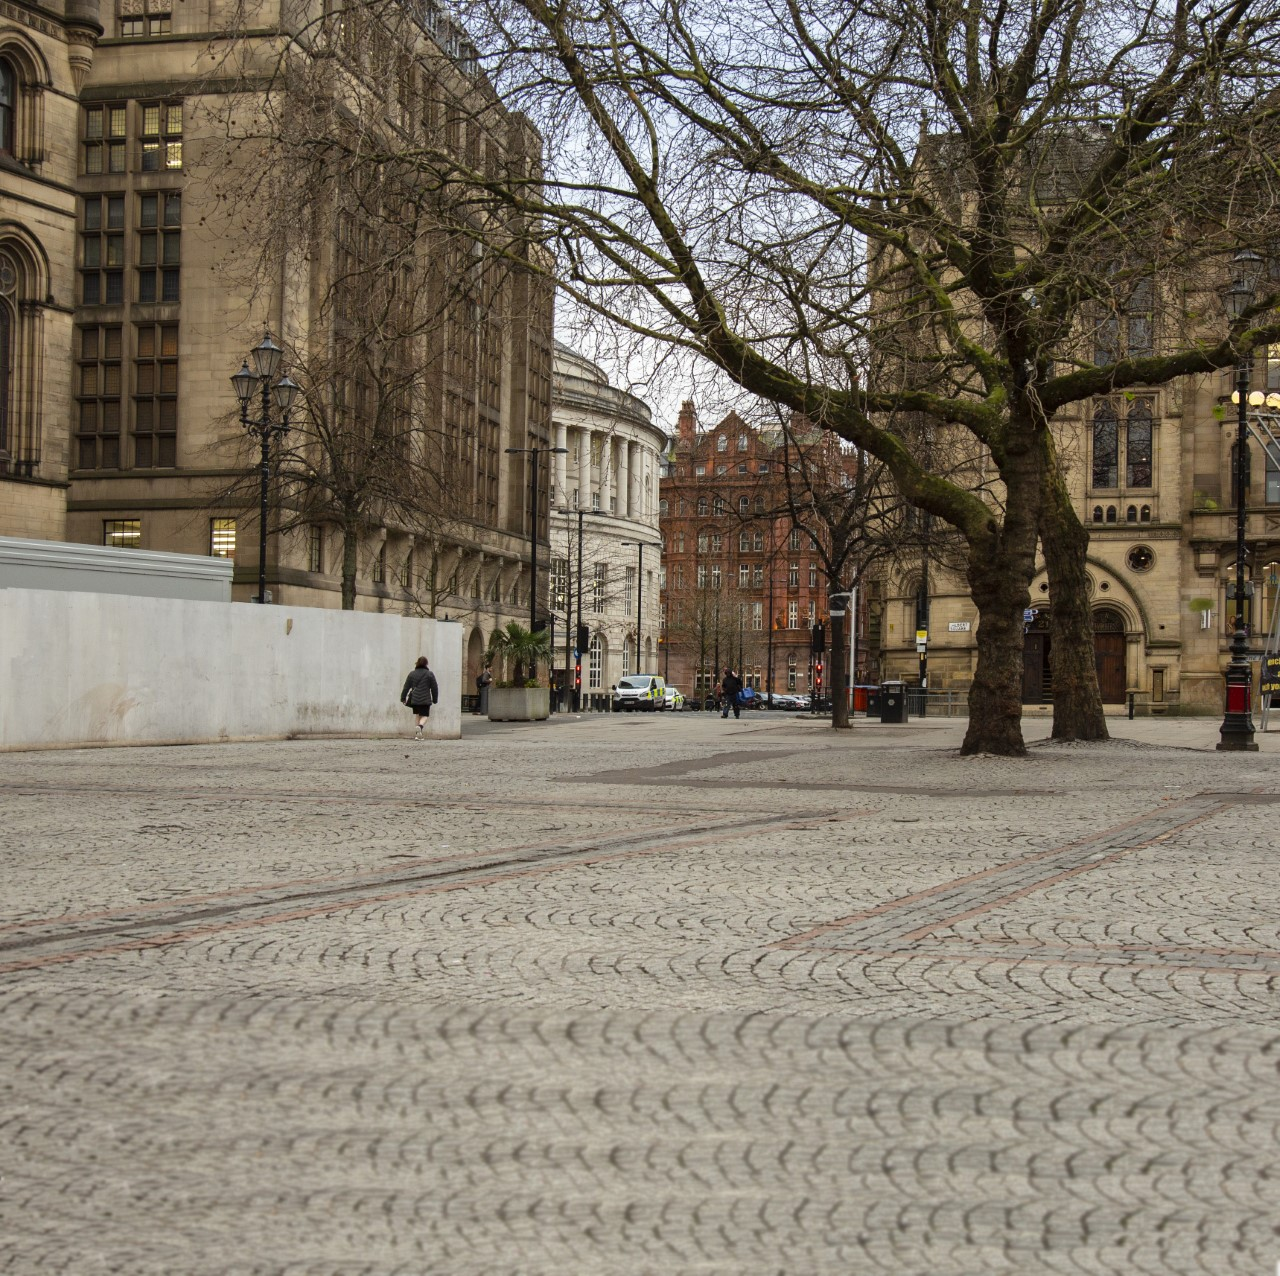 Alberts Square, Manchester - Now